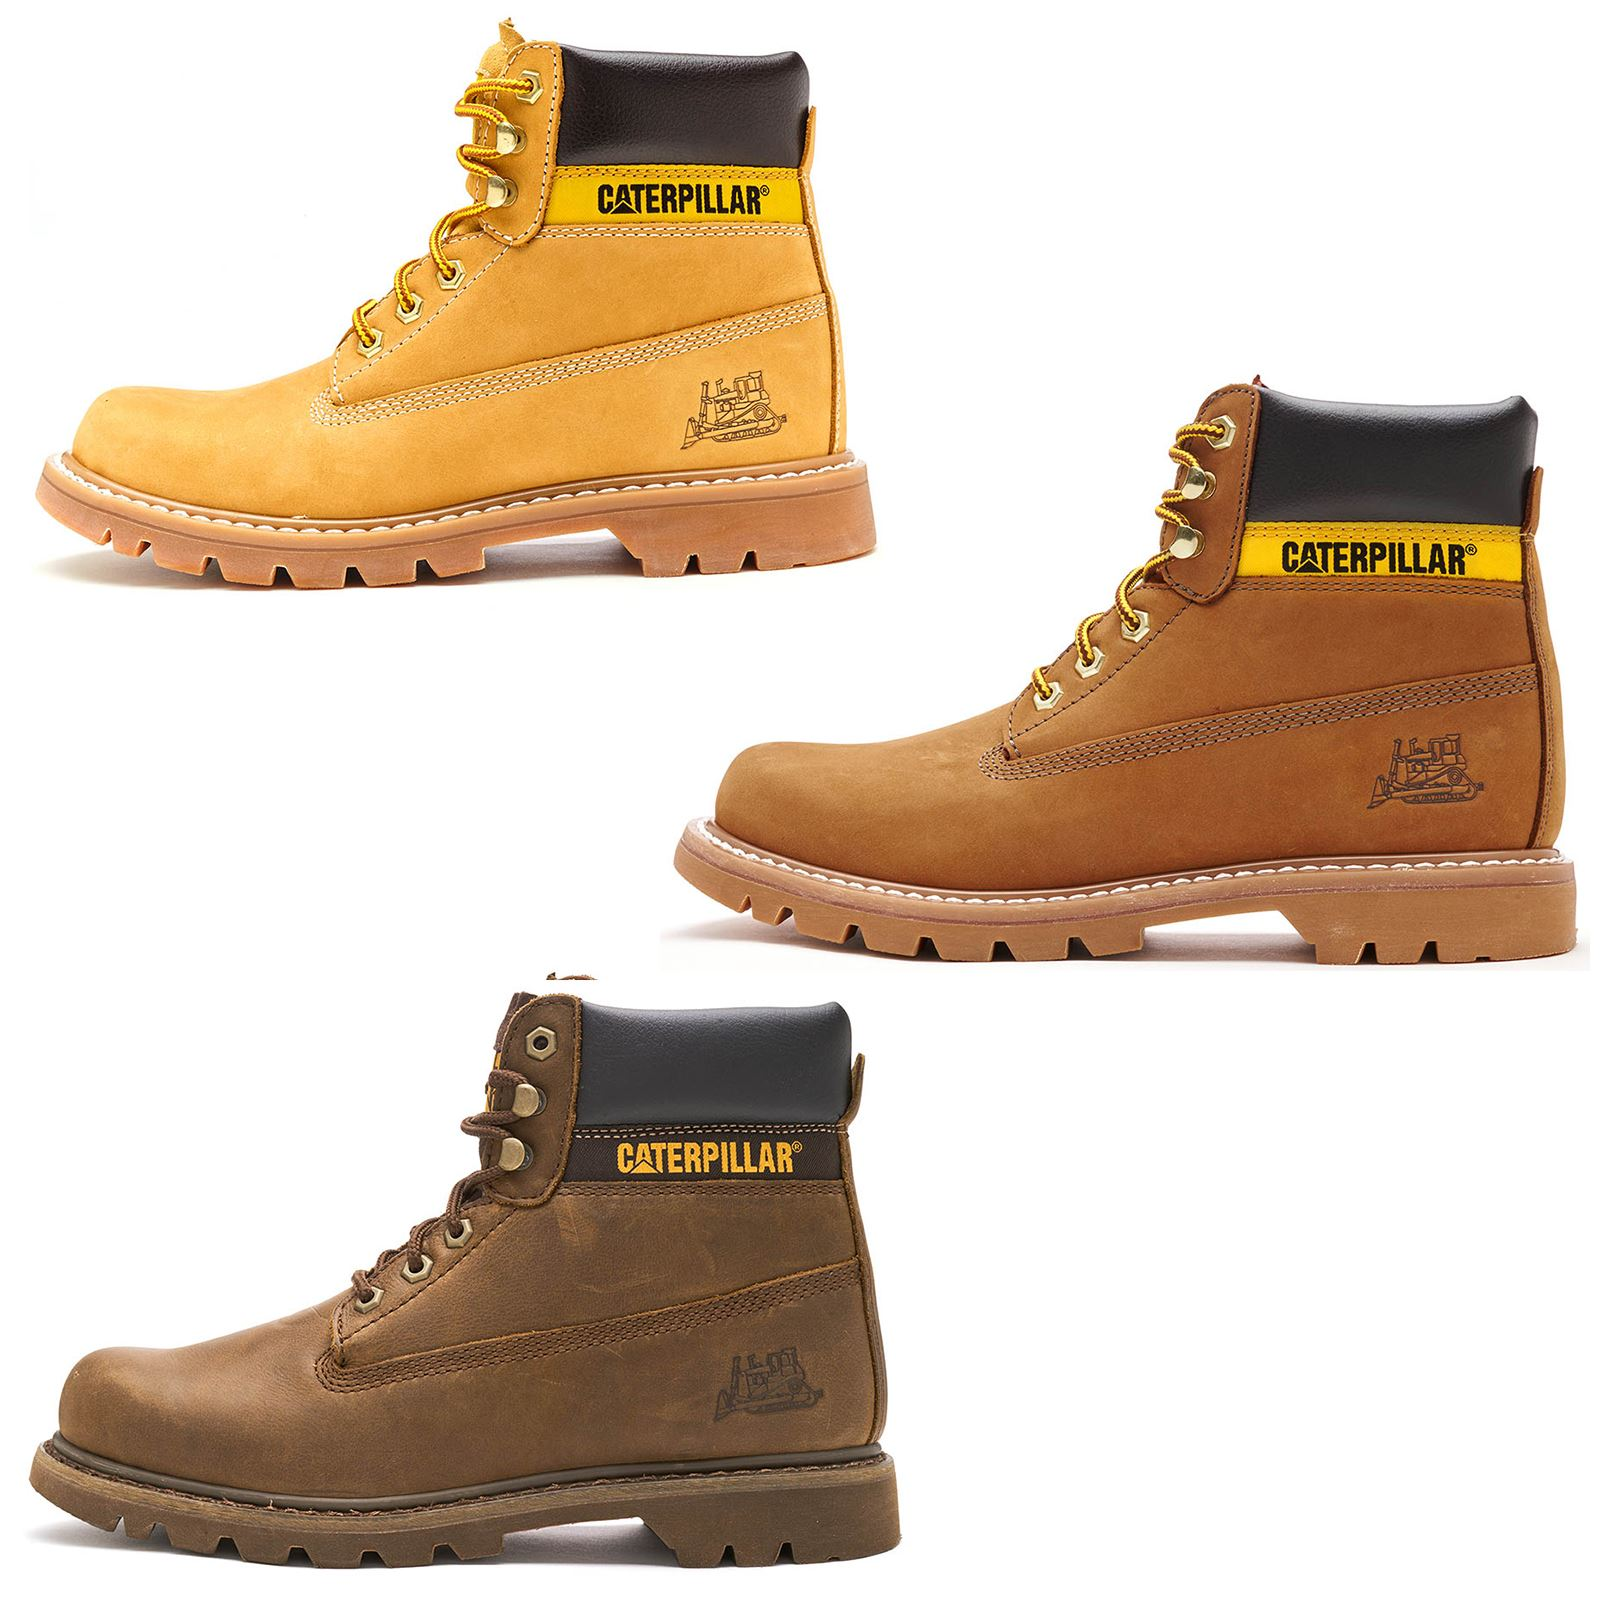 ff05bf6d31e Details about Caterpillar CAT Colorado Boots in Royal Brown & Honey Wheat